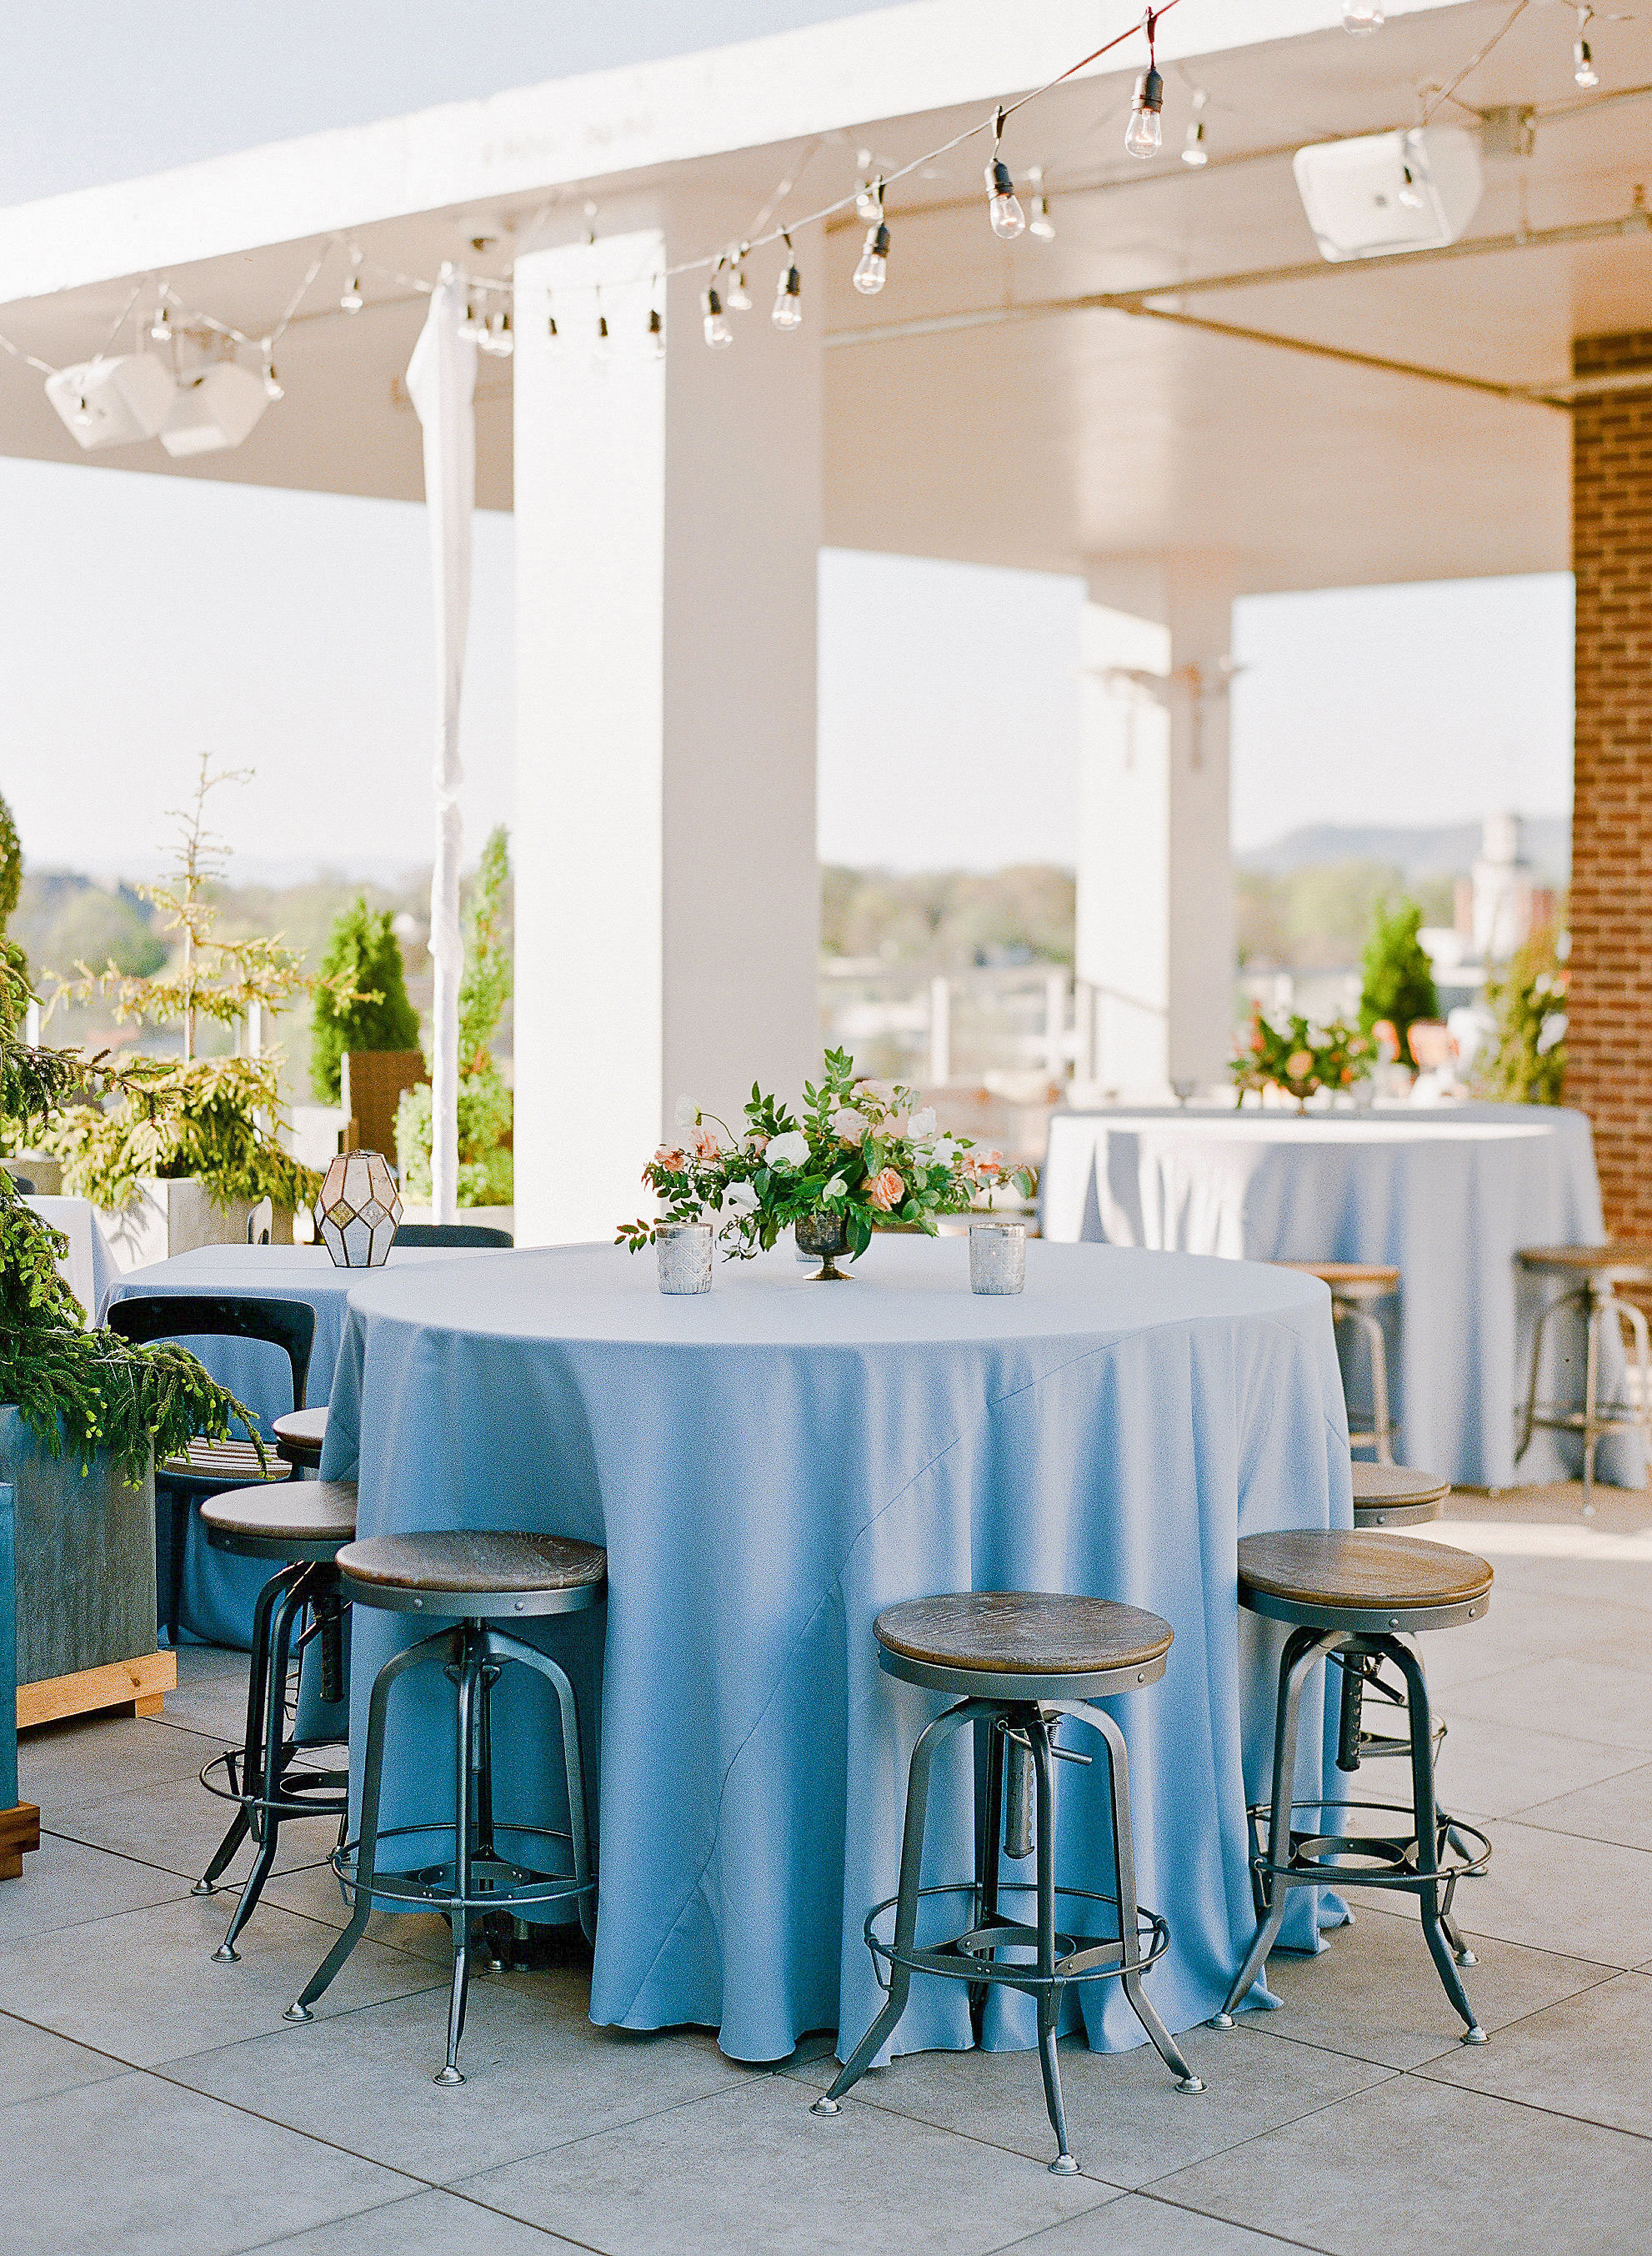 carey jared wedding tables outside